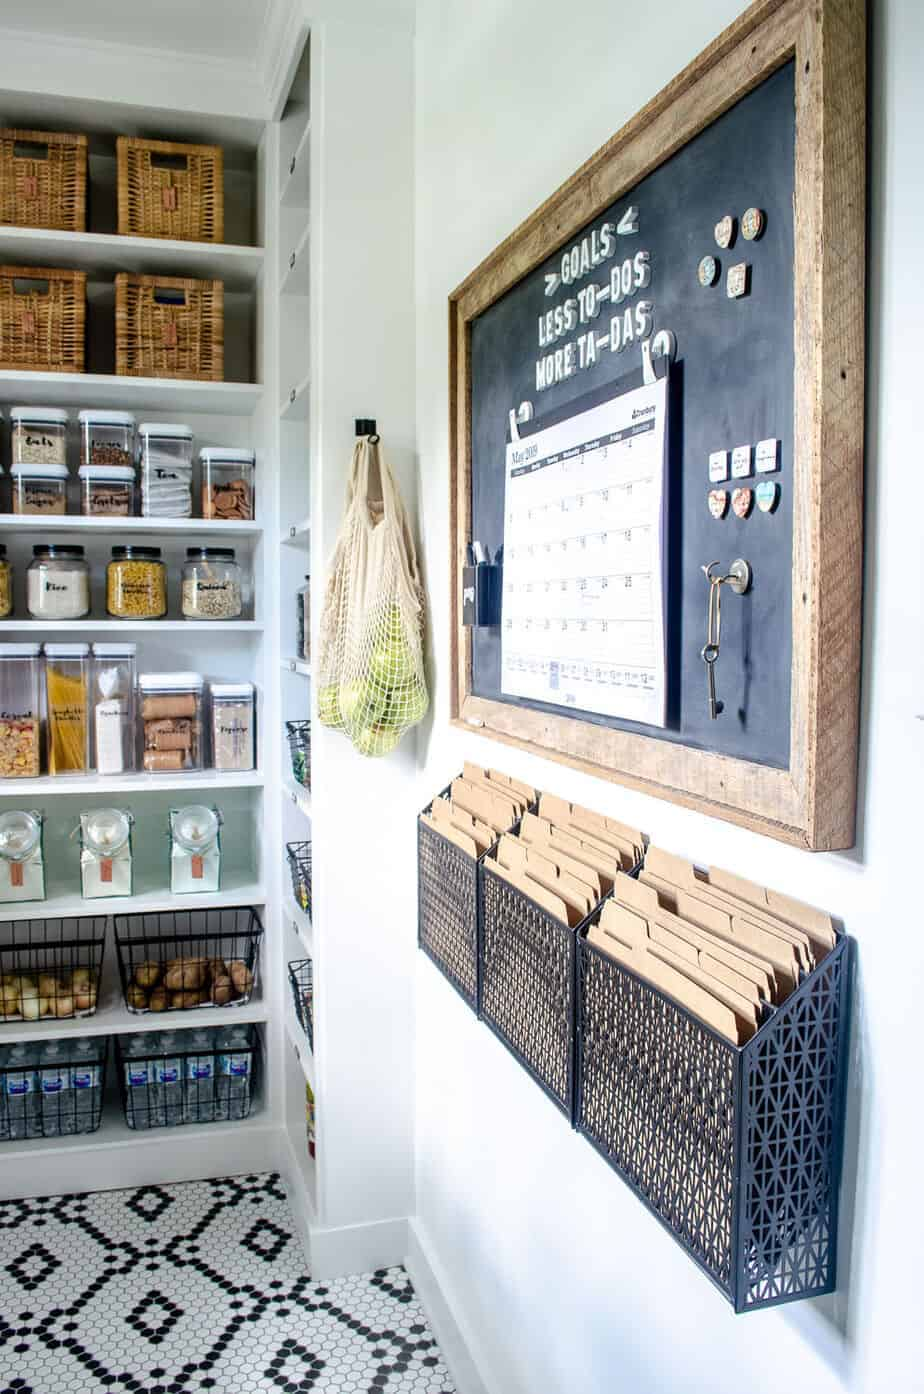 walk in pantry organization idea using a magnetic board and command center